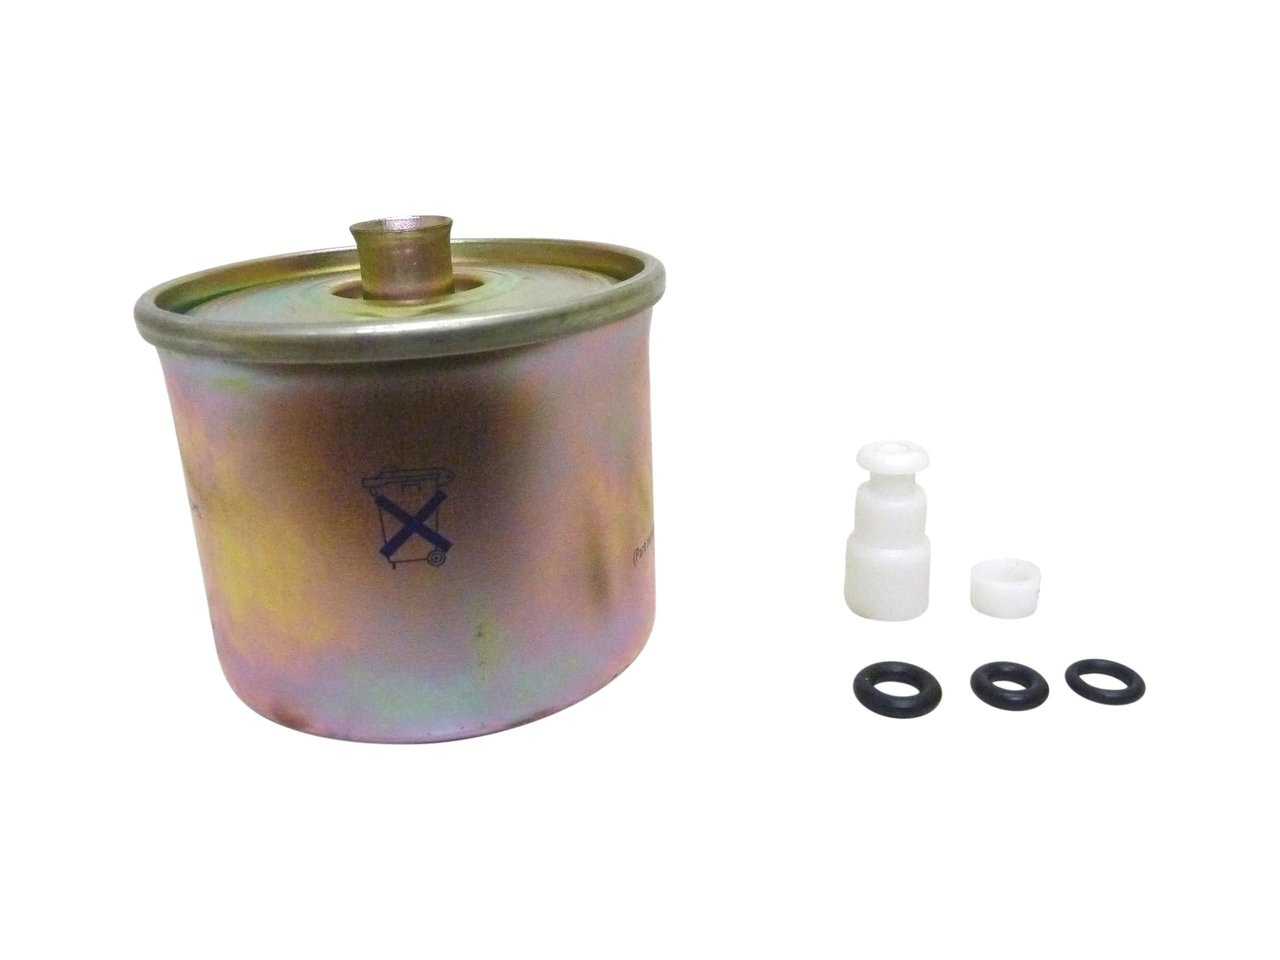 Land Rover Fuel Filter Location Range P38 2003 Mustang In Tank Freelander 1 Aftermarket Wfl000010